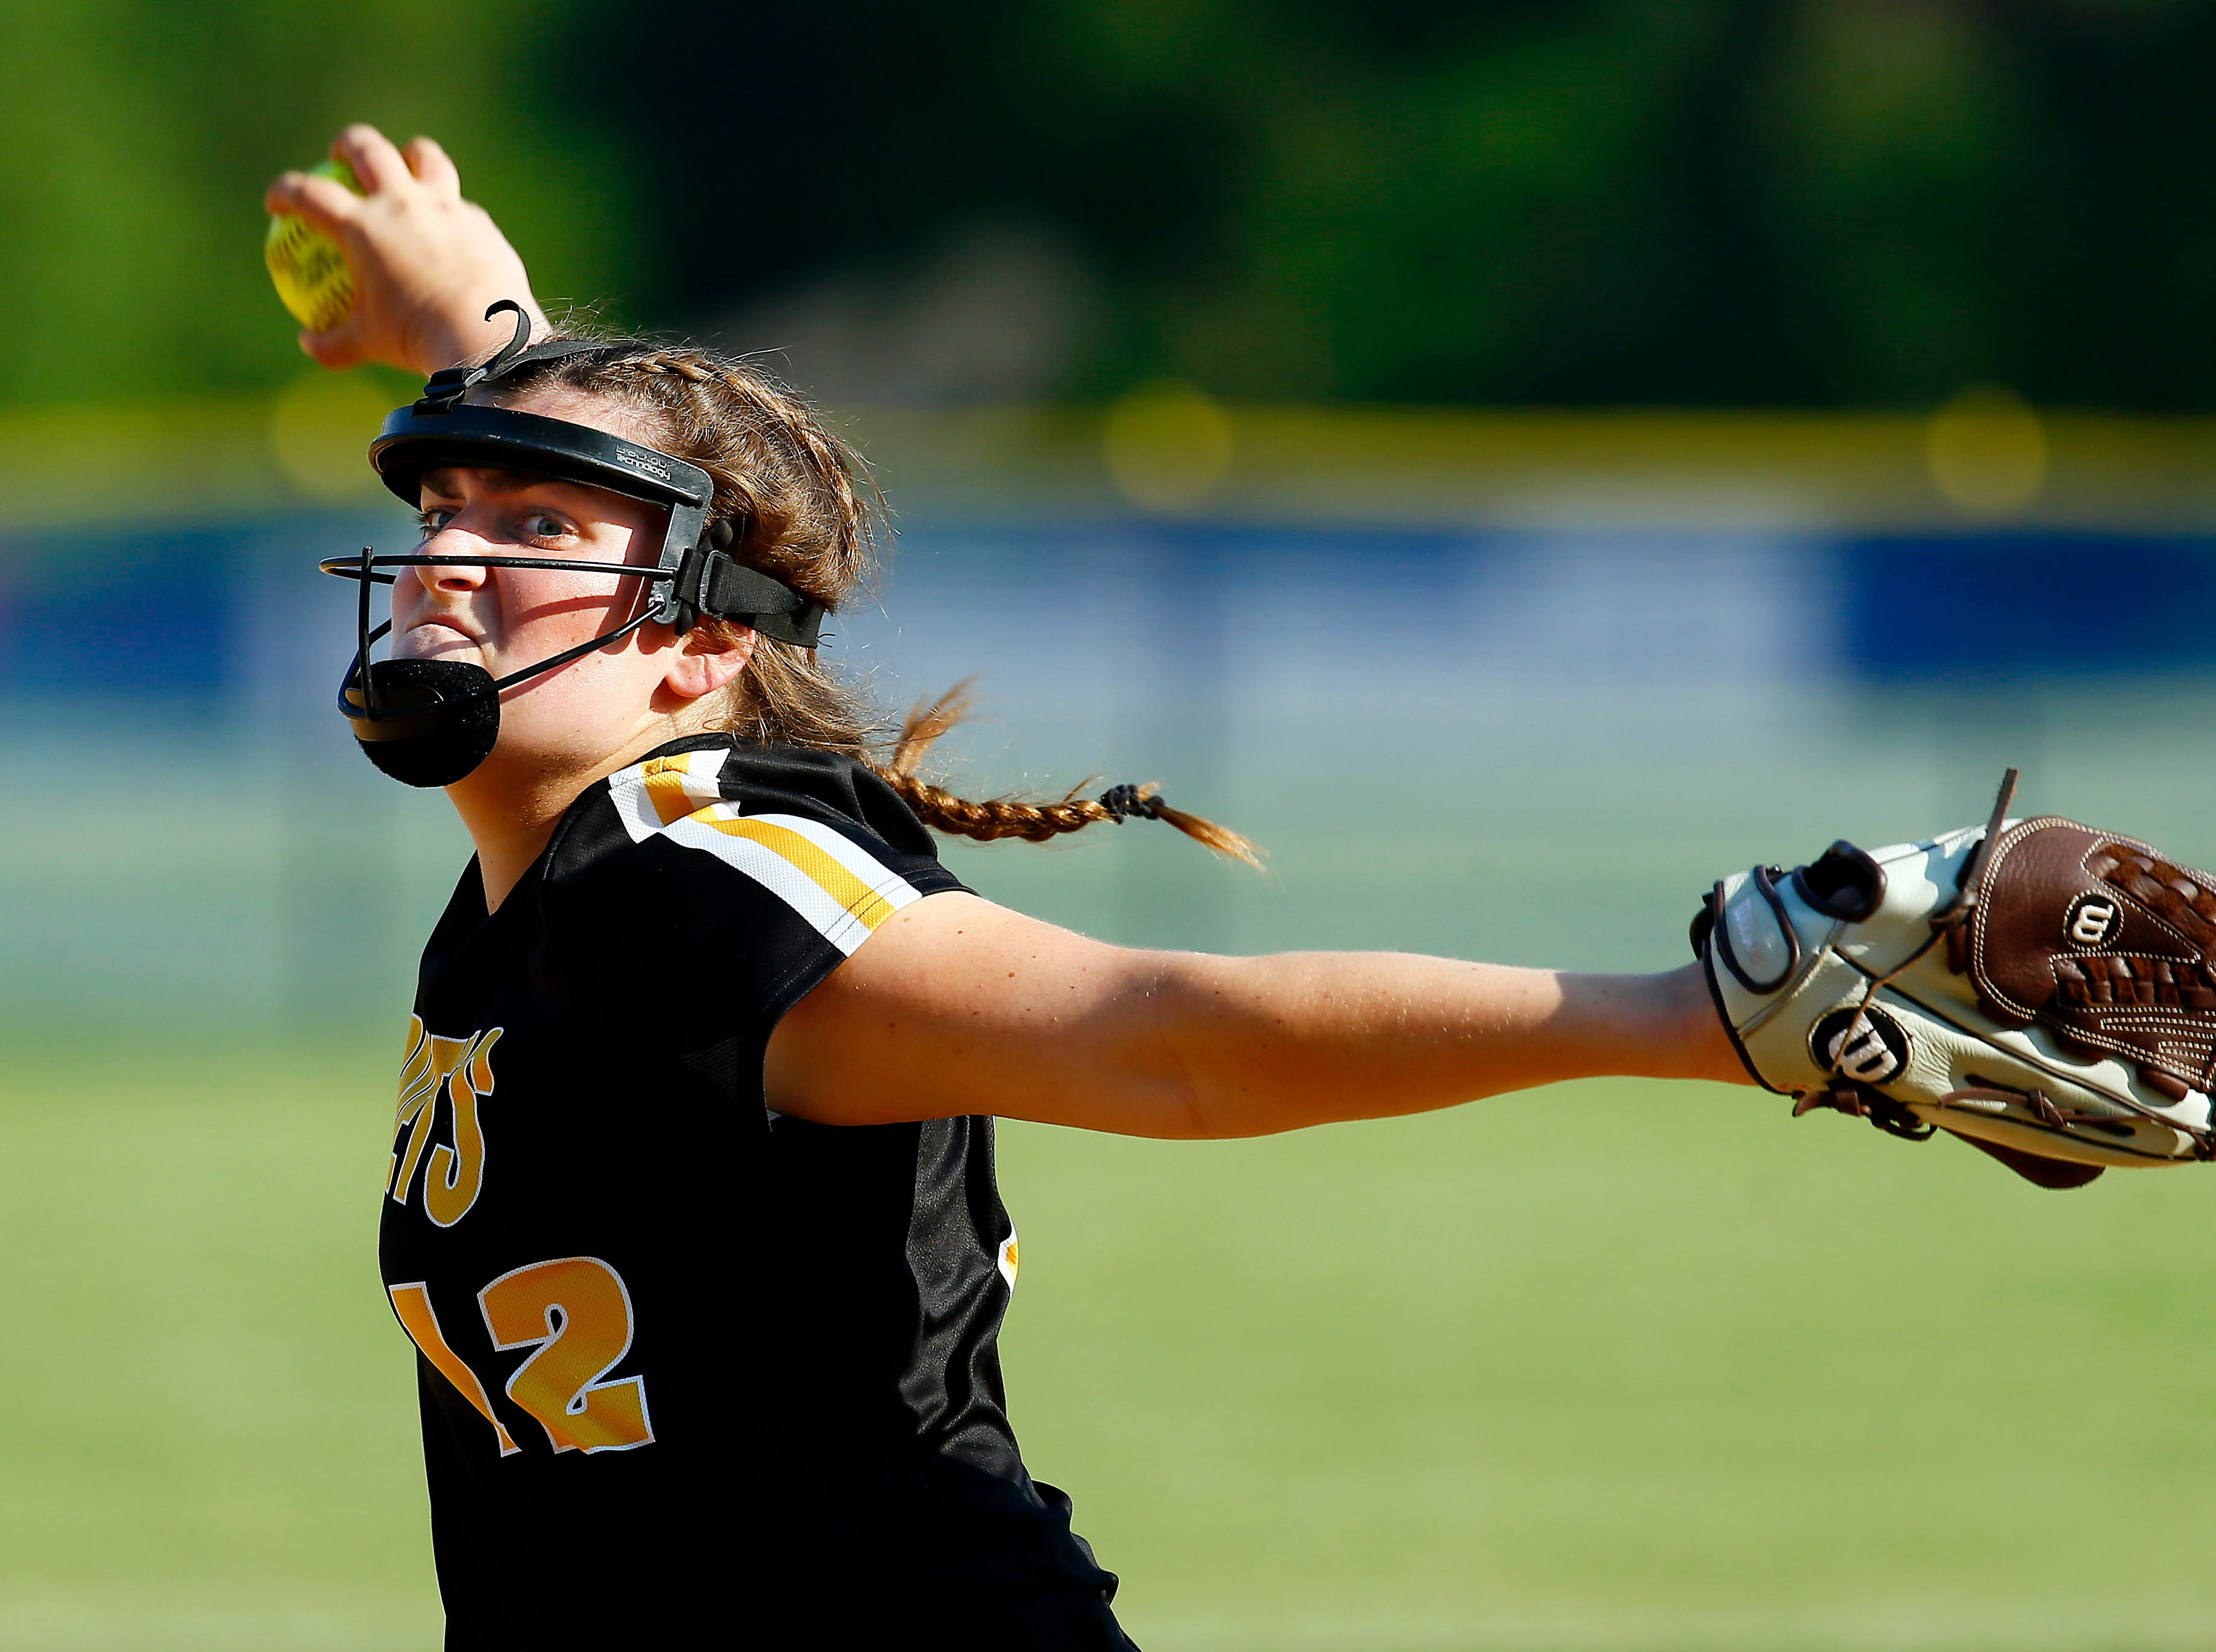 Hanover Park pitcher Jessica Miller throws vs. Parsippany in the NJSIAA North 2 Group II softball final. May 29, 2018. Parsippany, NJ